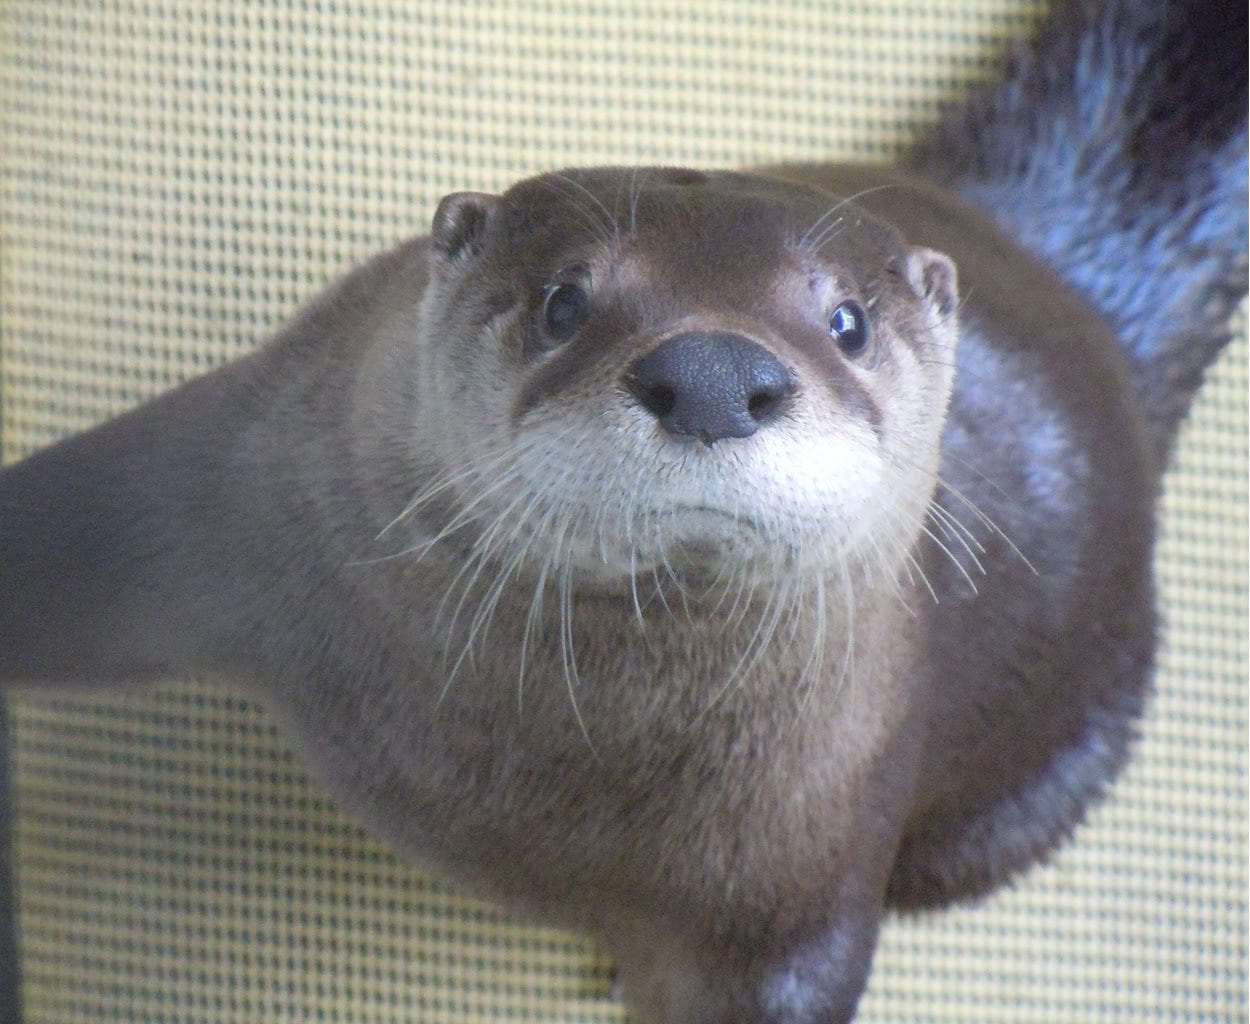 Remy was a North American River Otter who lived at The Wild Center